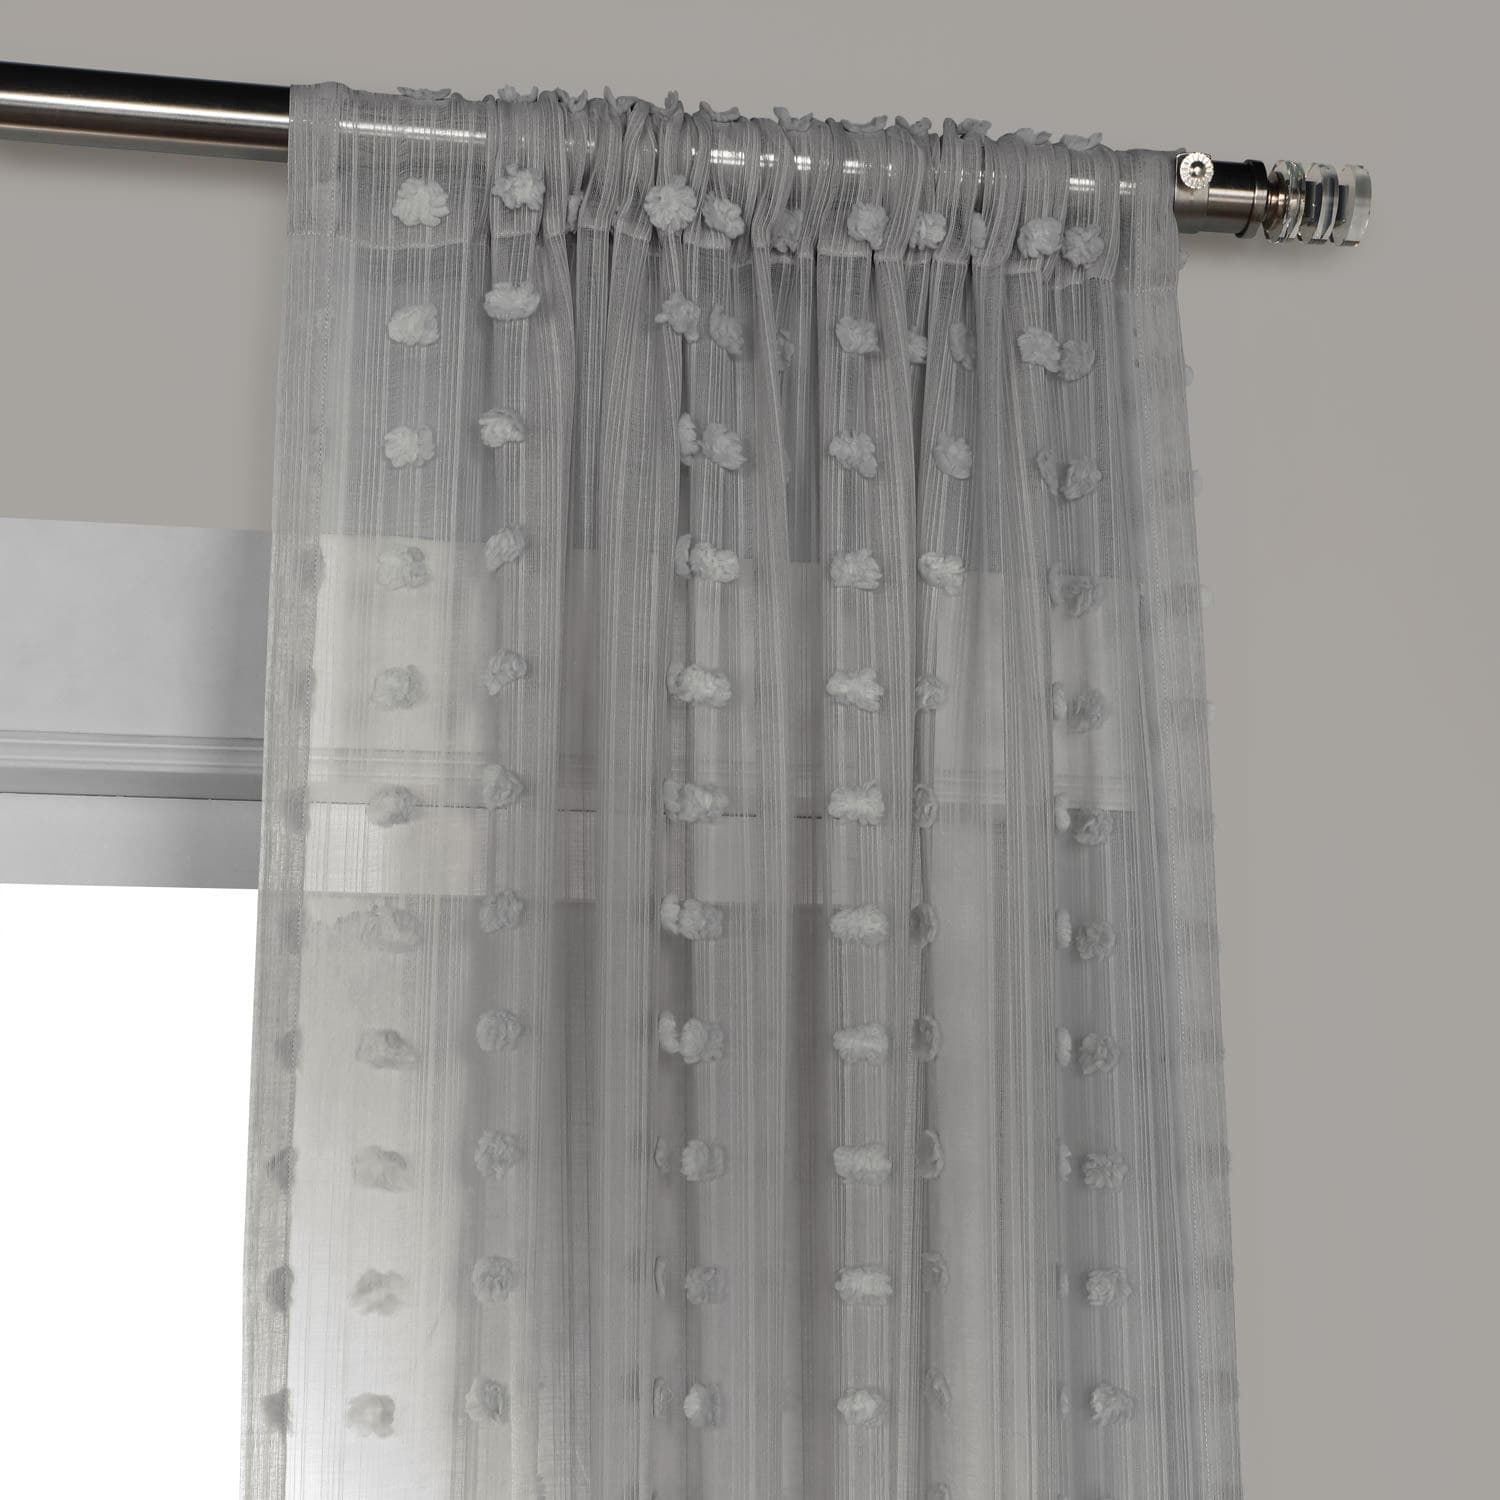 For Affordable Ready Made Blackout Curtains In A Range Of